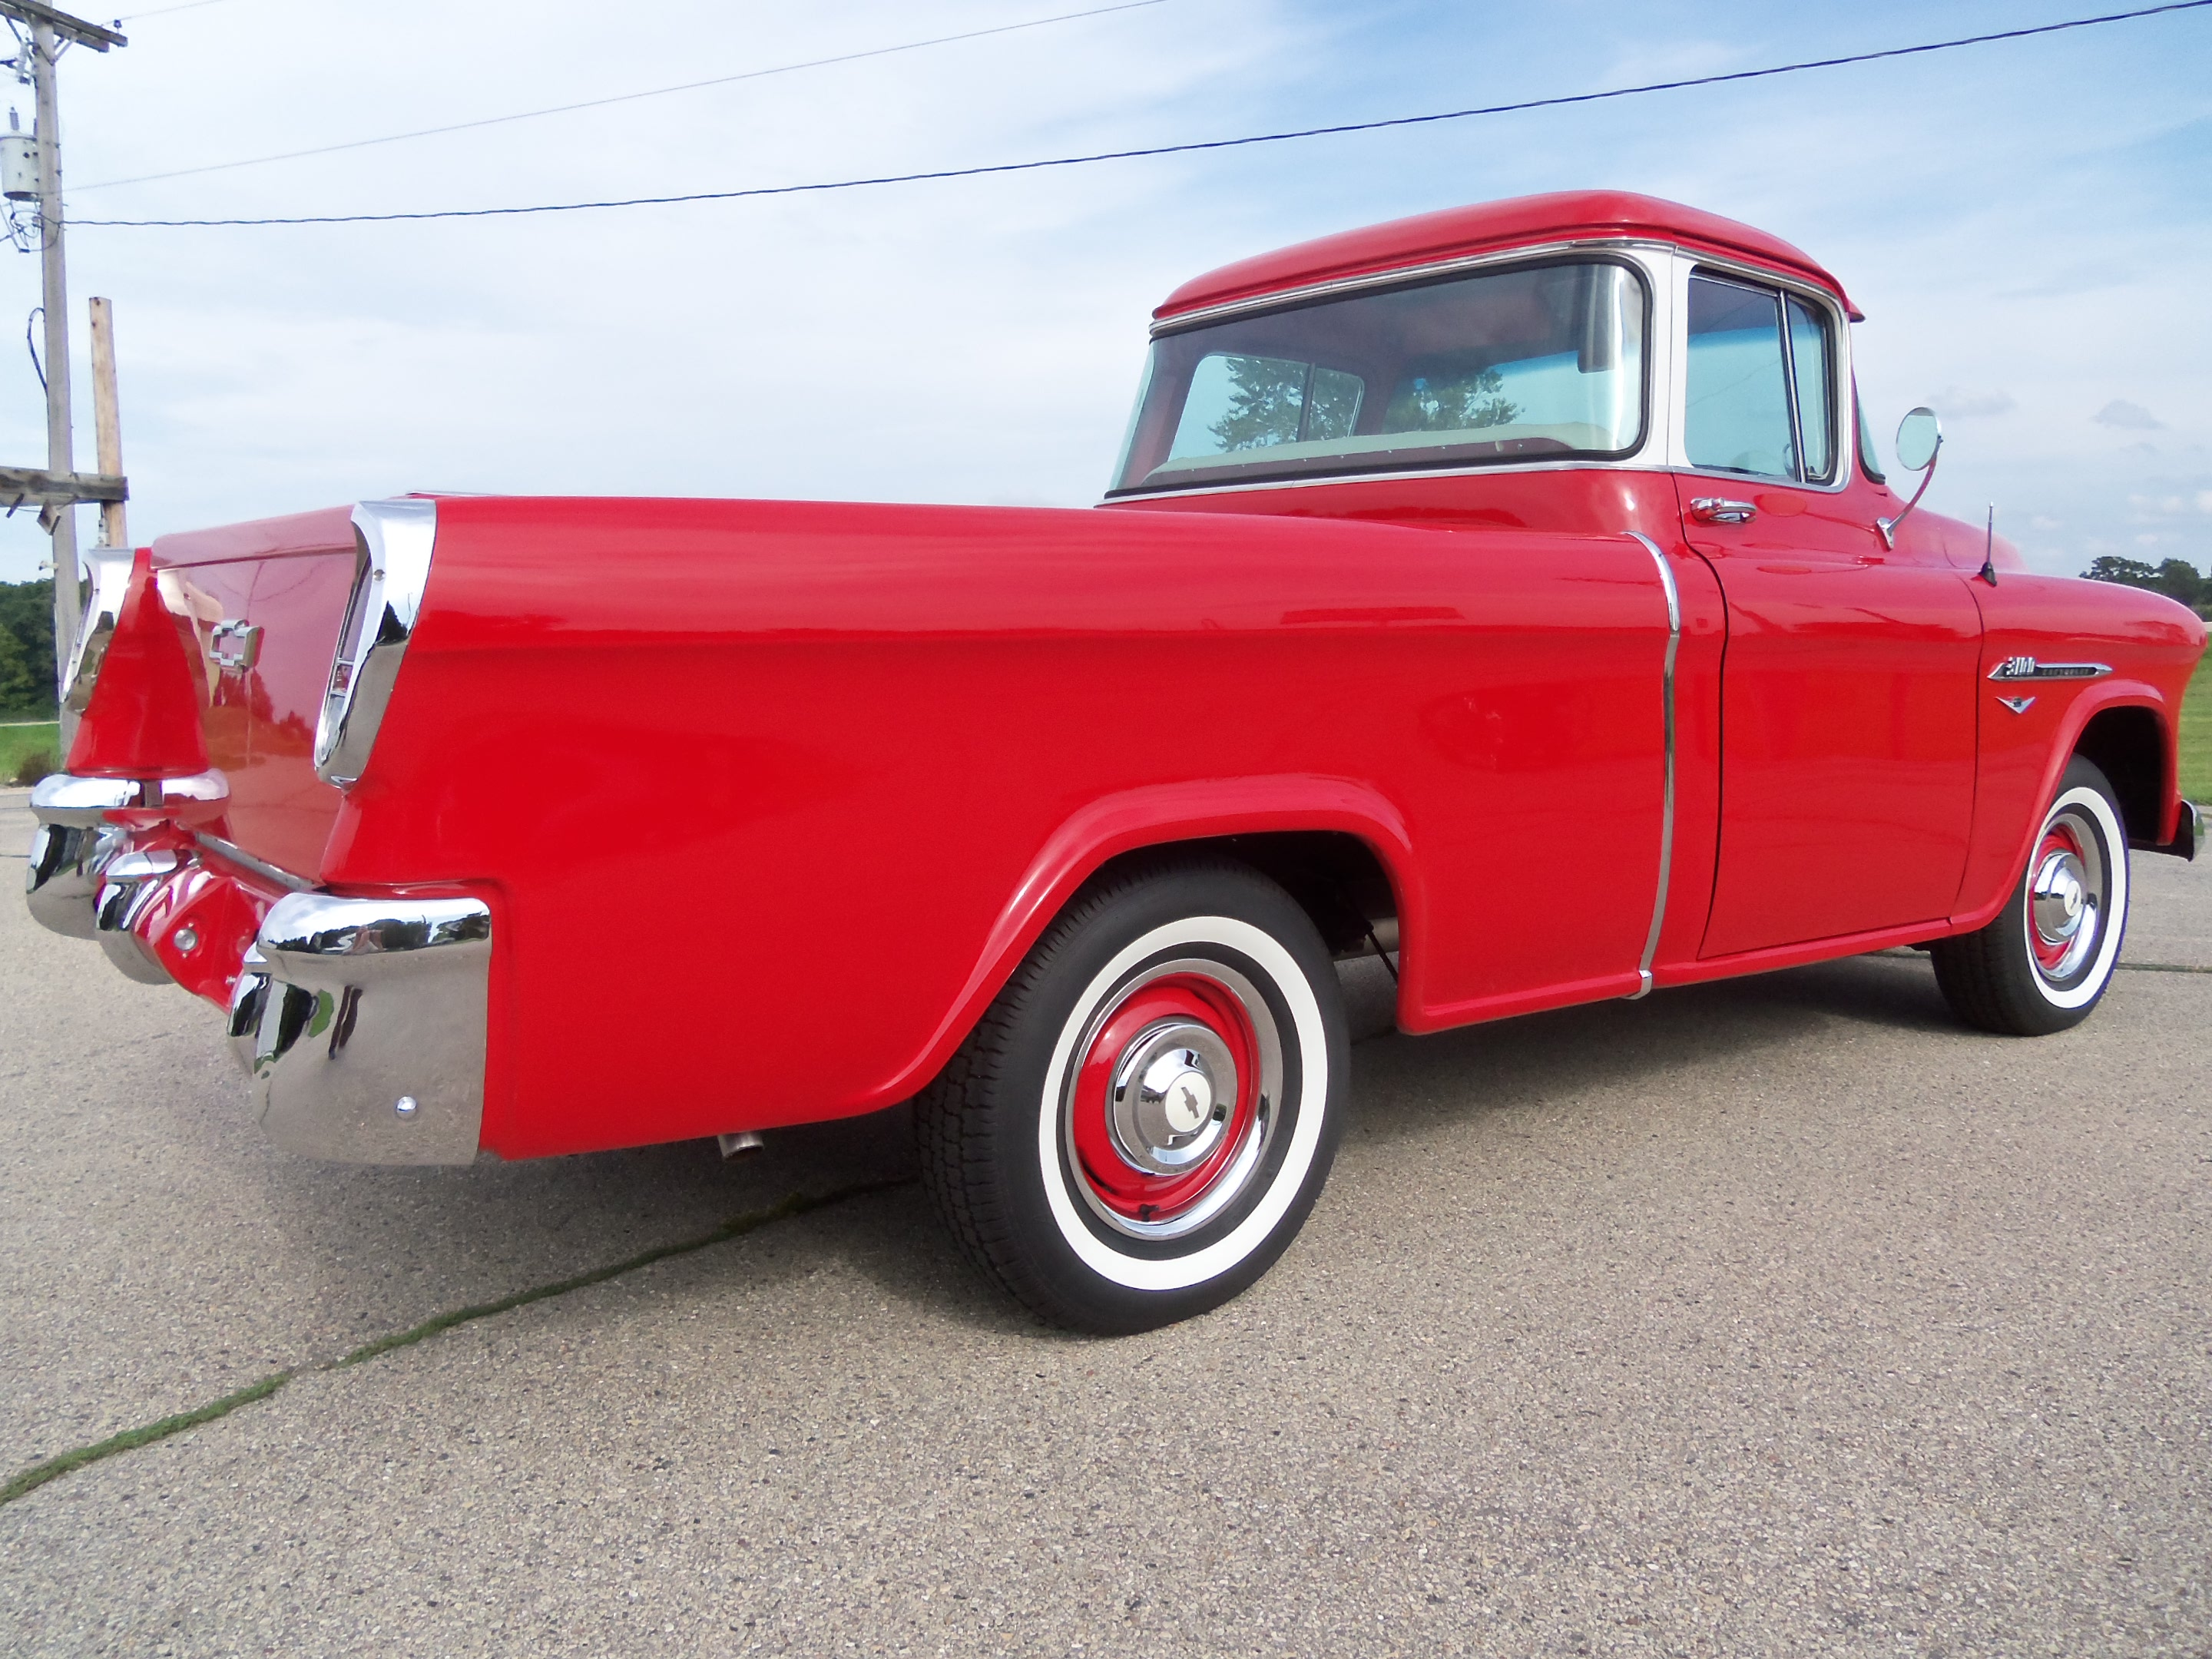 For Sale: A Sharp and Well Restored 1956 Chevrolet Cameo 3100 Pickup